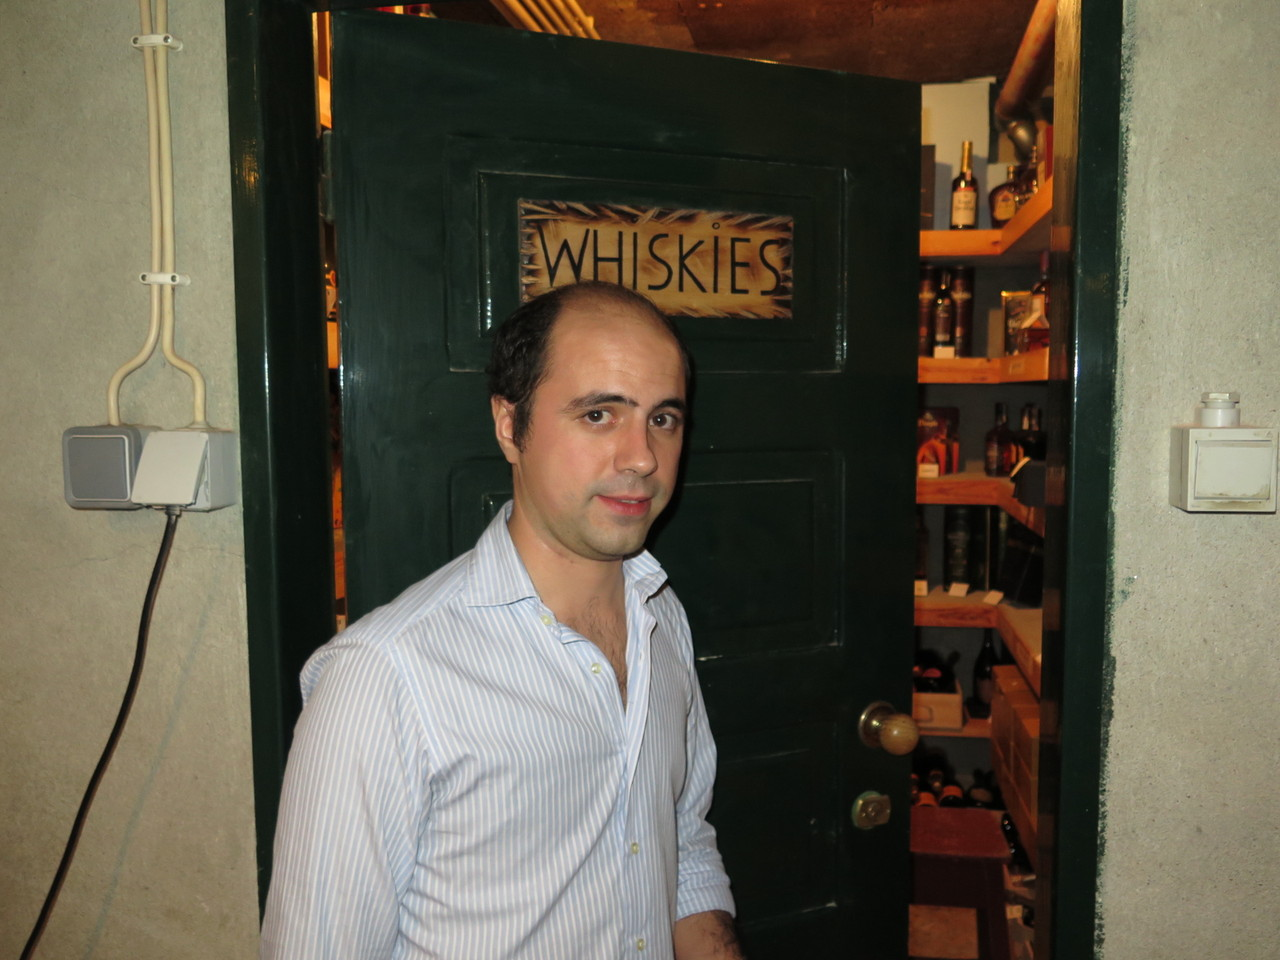 A sala dos whiskies